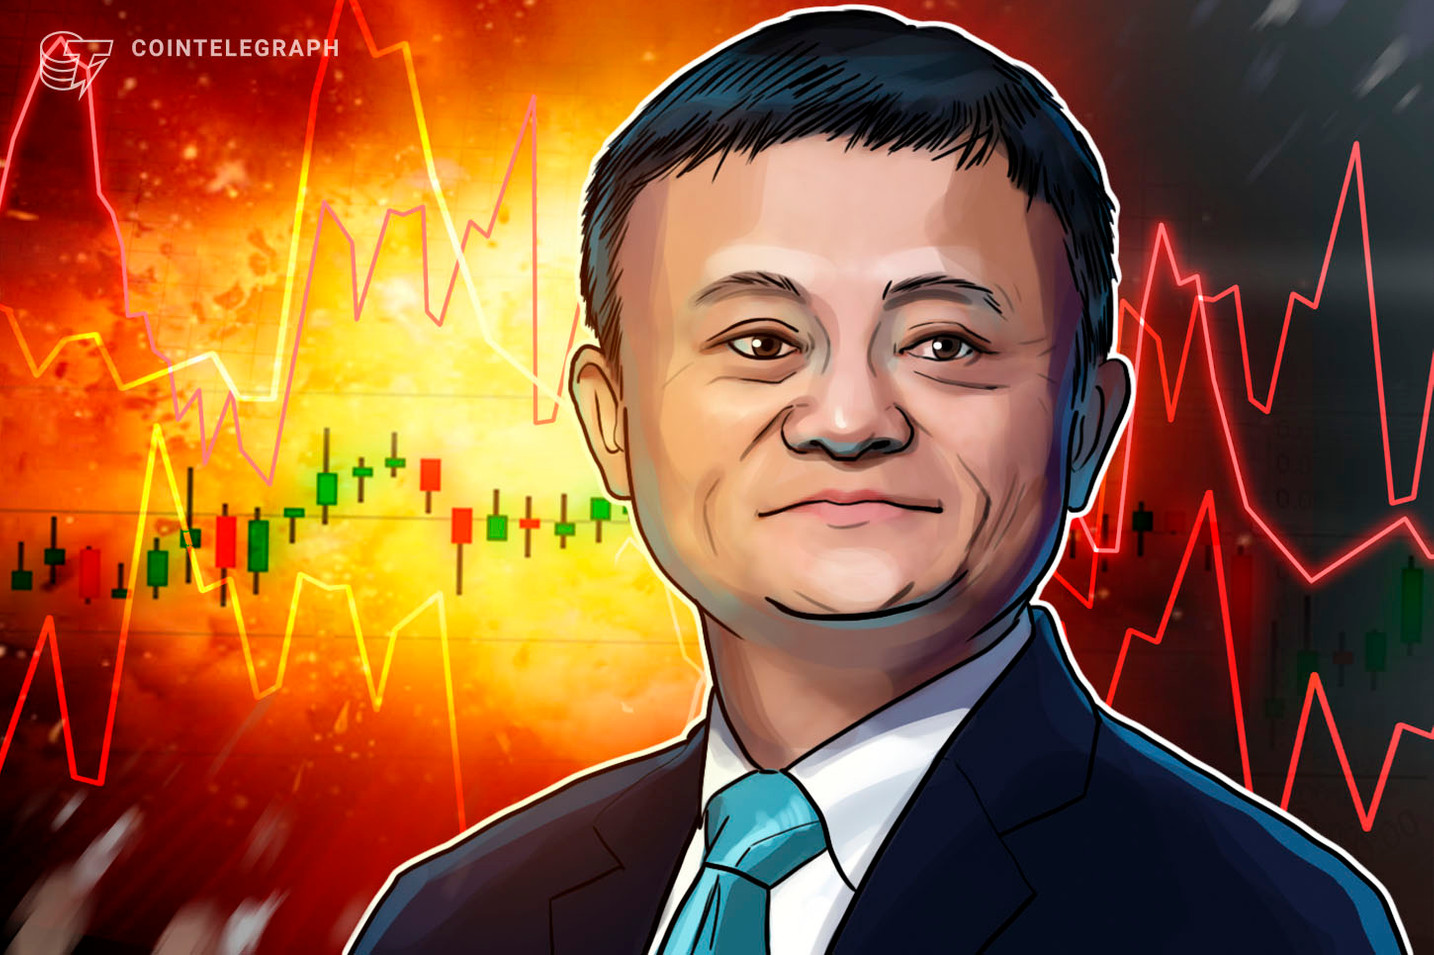 Alibaba's Jack Ma praises the disruptive nature of digital currencies